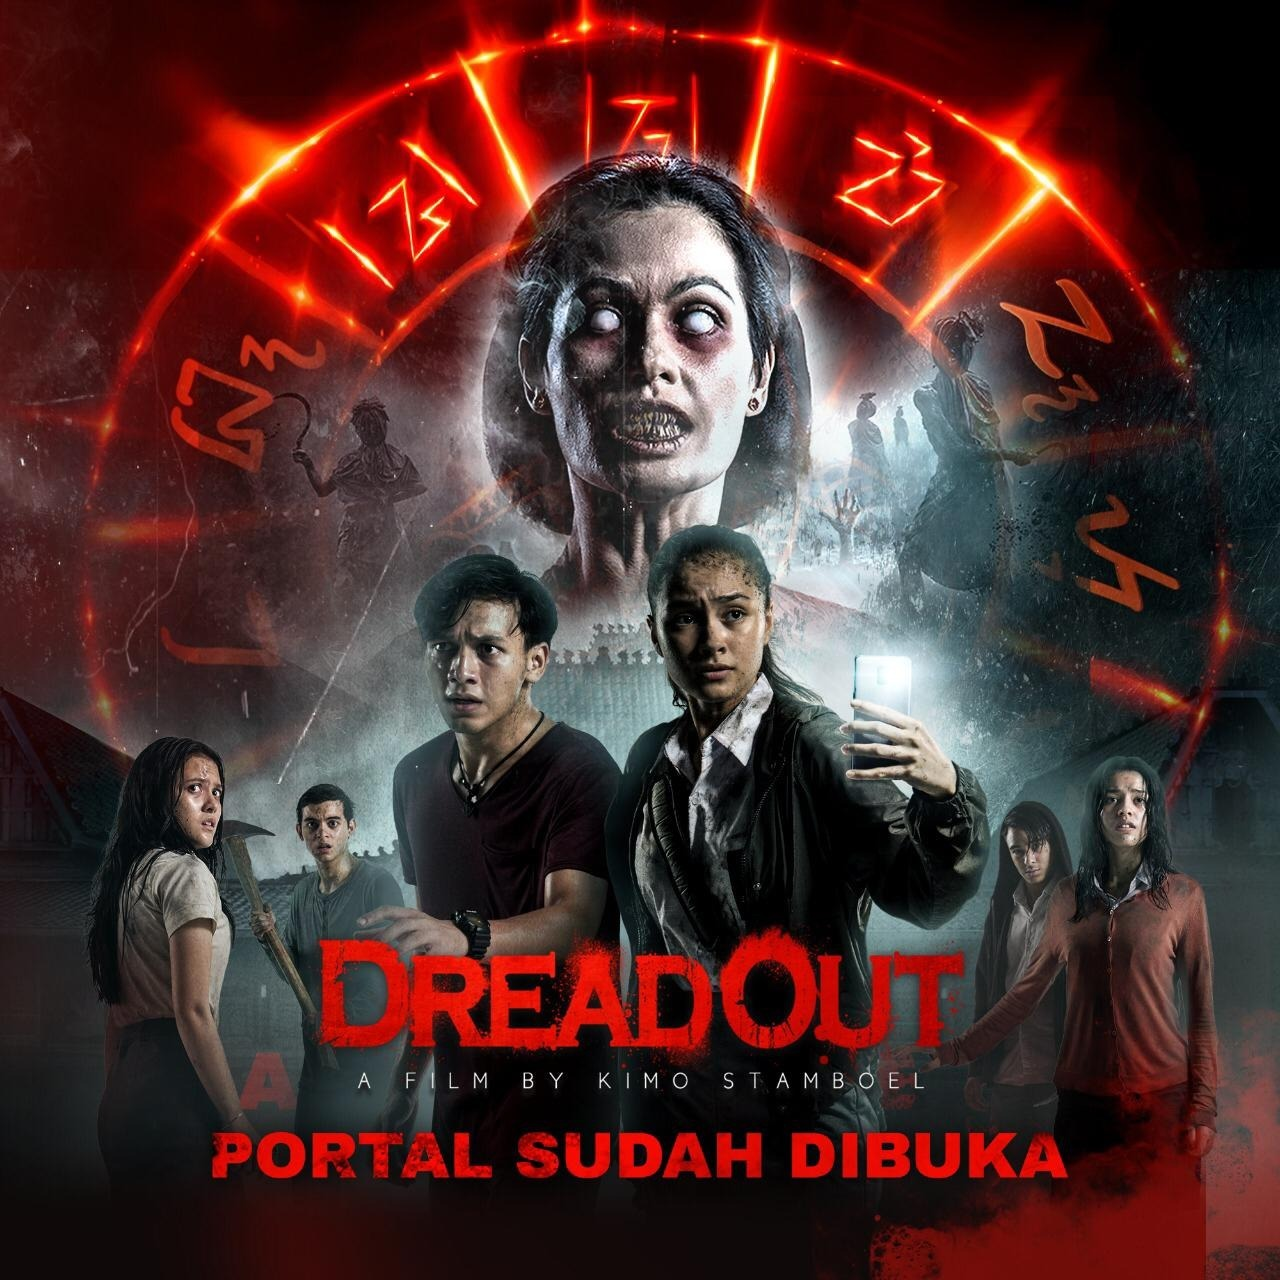 DreadOut Movie Released on Indonesia Cinemas Nationwide